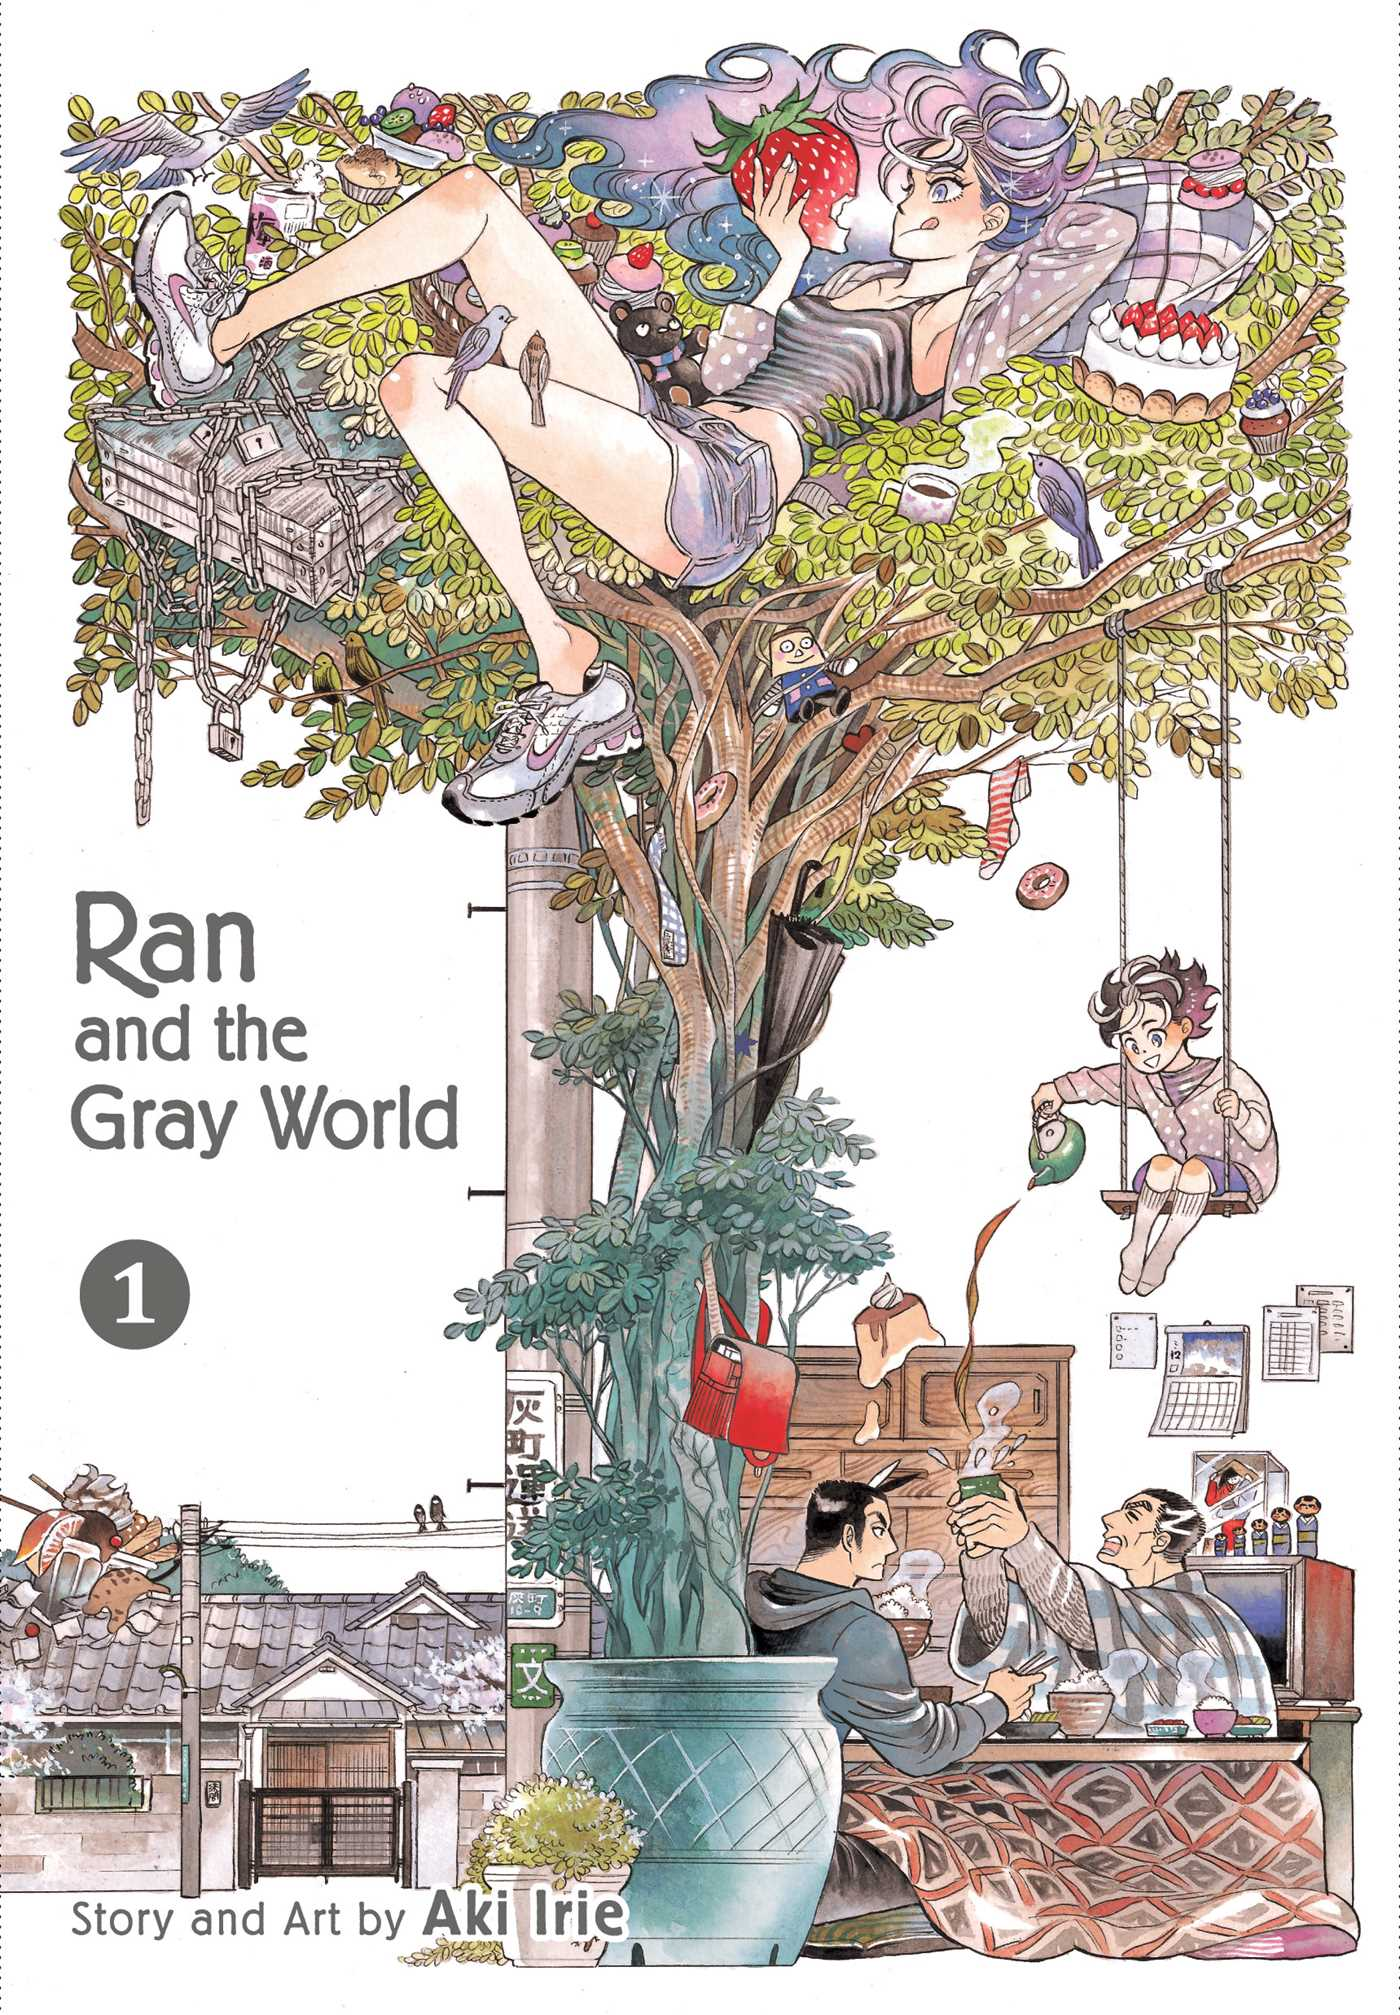 Ran and the Gray World Vol. 1 Review